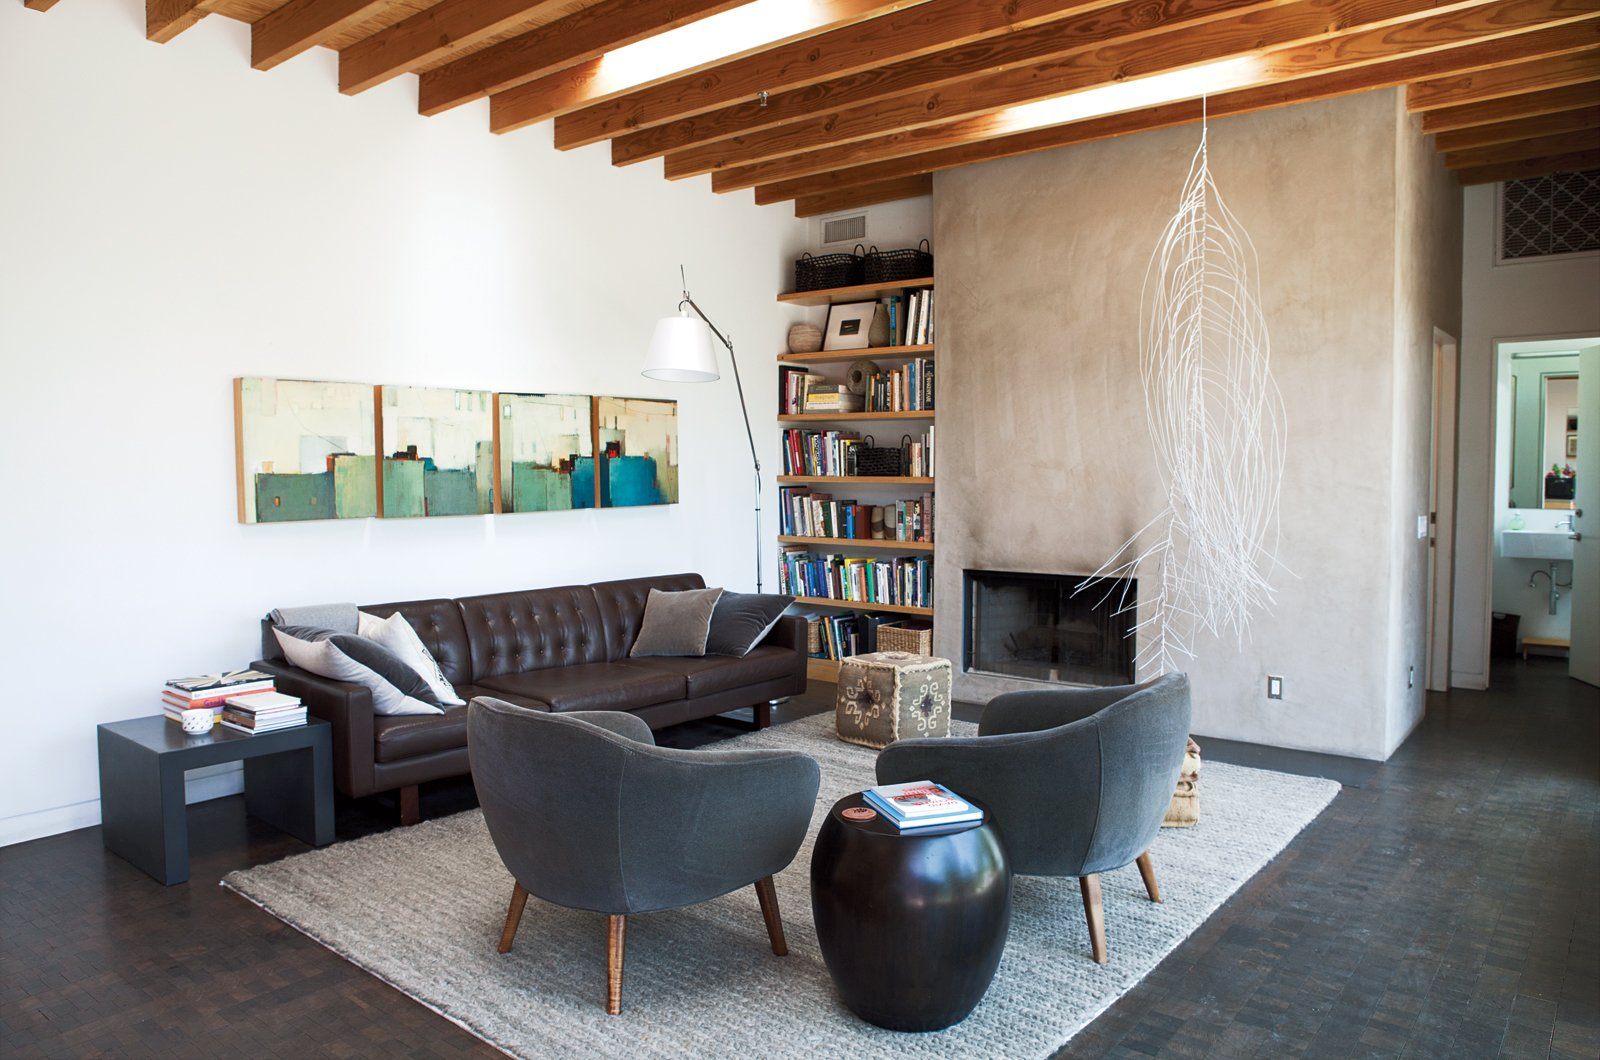 A family room off the kitchen is stocked with pieces from Room & Board, including the Wells sofa and gray Cable rug. The hanging sculpture is by Rebecca Niederlander and the quartet of paintings is by Babak Emanuel. L-Shaped Indoor-Outdoor LA Home - Photo 6 of 21